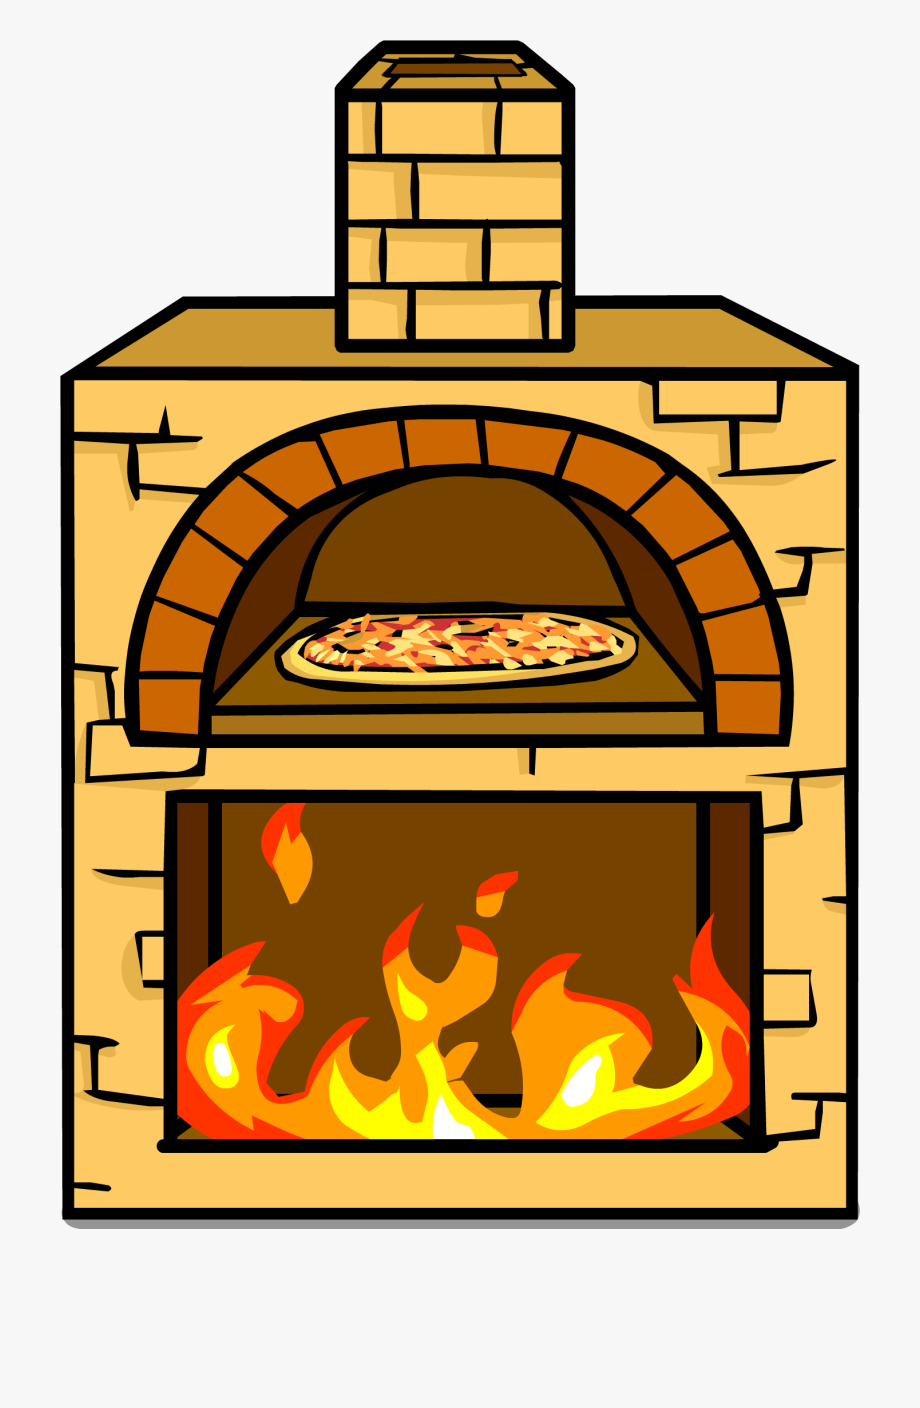 Jpg Royalty Free Download Pizza Clipart Png.